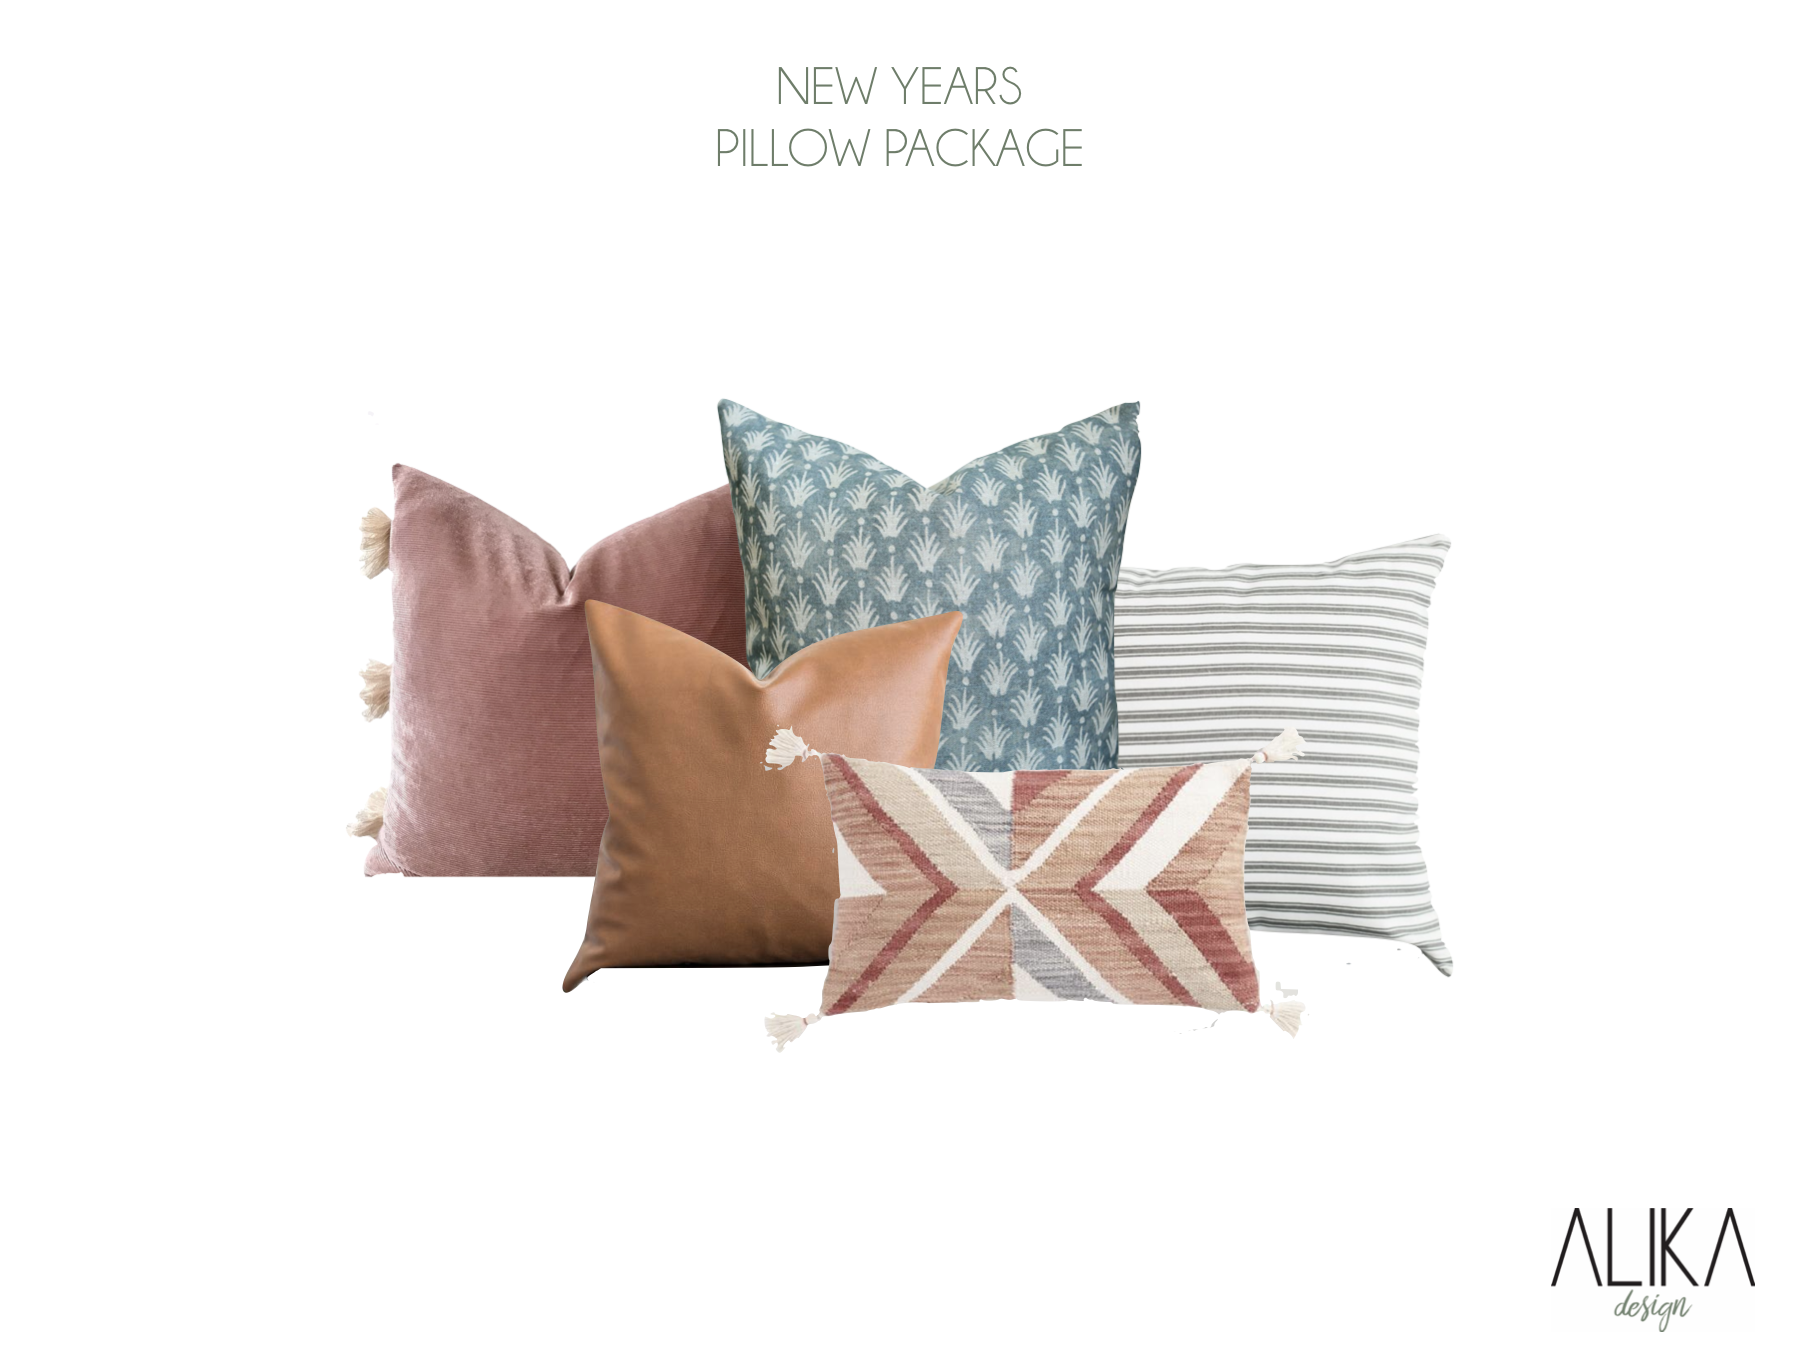 ALIKA DESIGN PILLOW PACKAGE